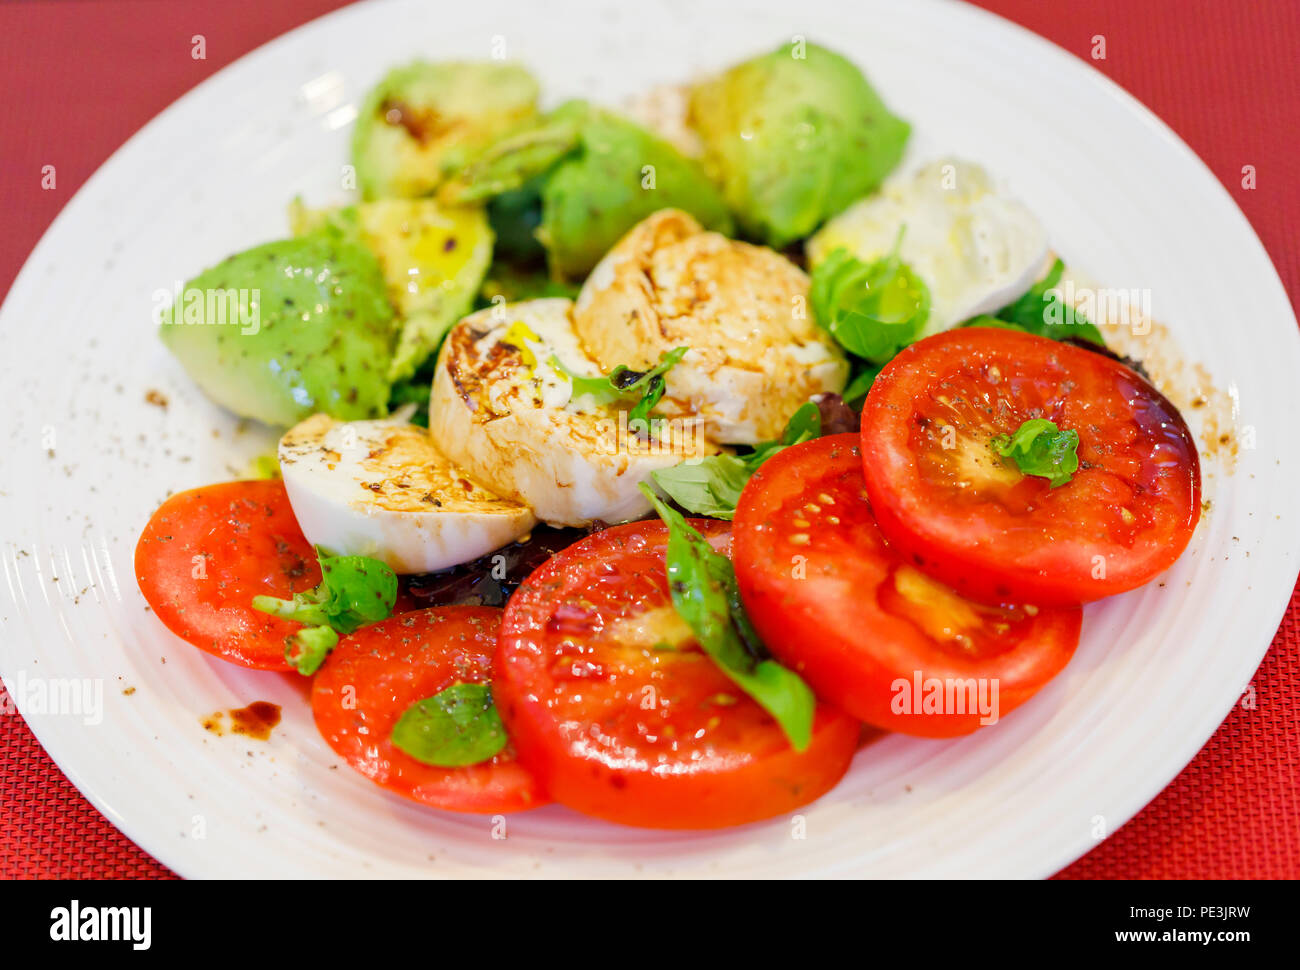 Healthy lifestyle: typical Mediterranean diet, tricolore salad ingredients sliced red tomatoes, white buffalo mozzarella cheese and green avocado pear - Stock Image